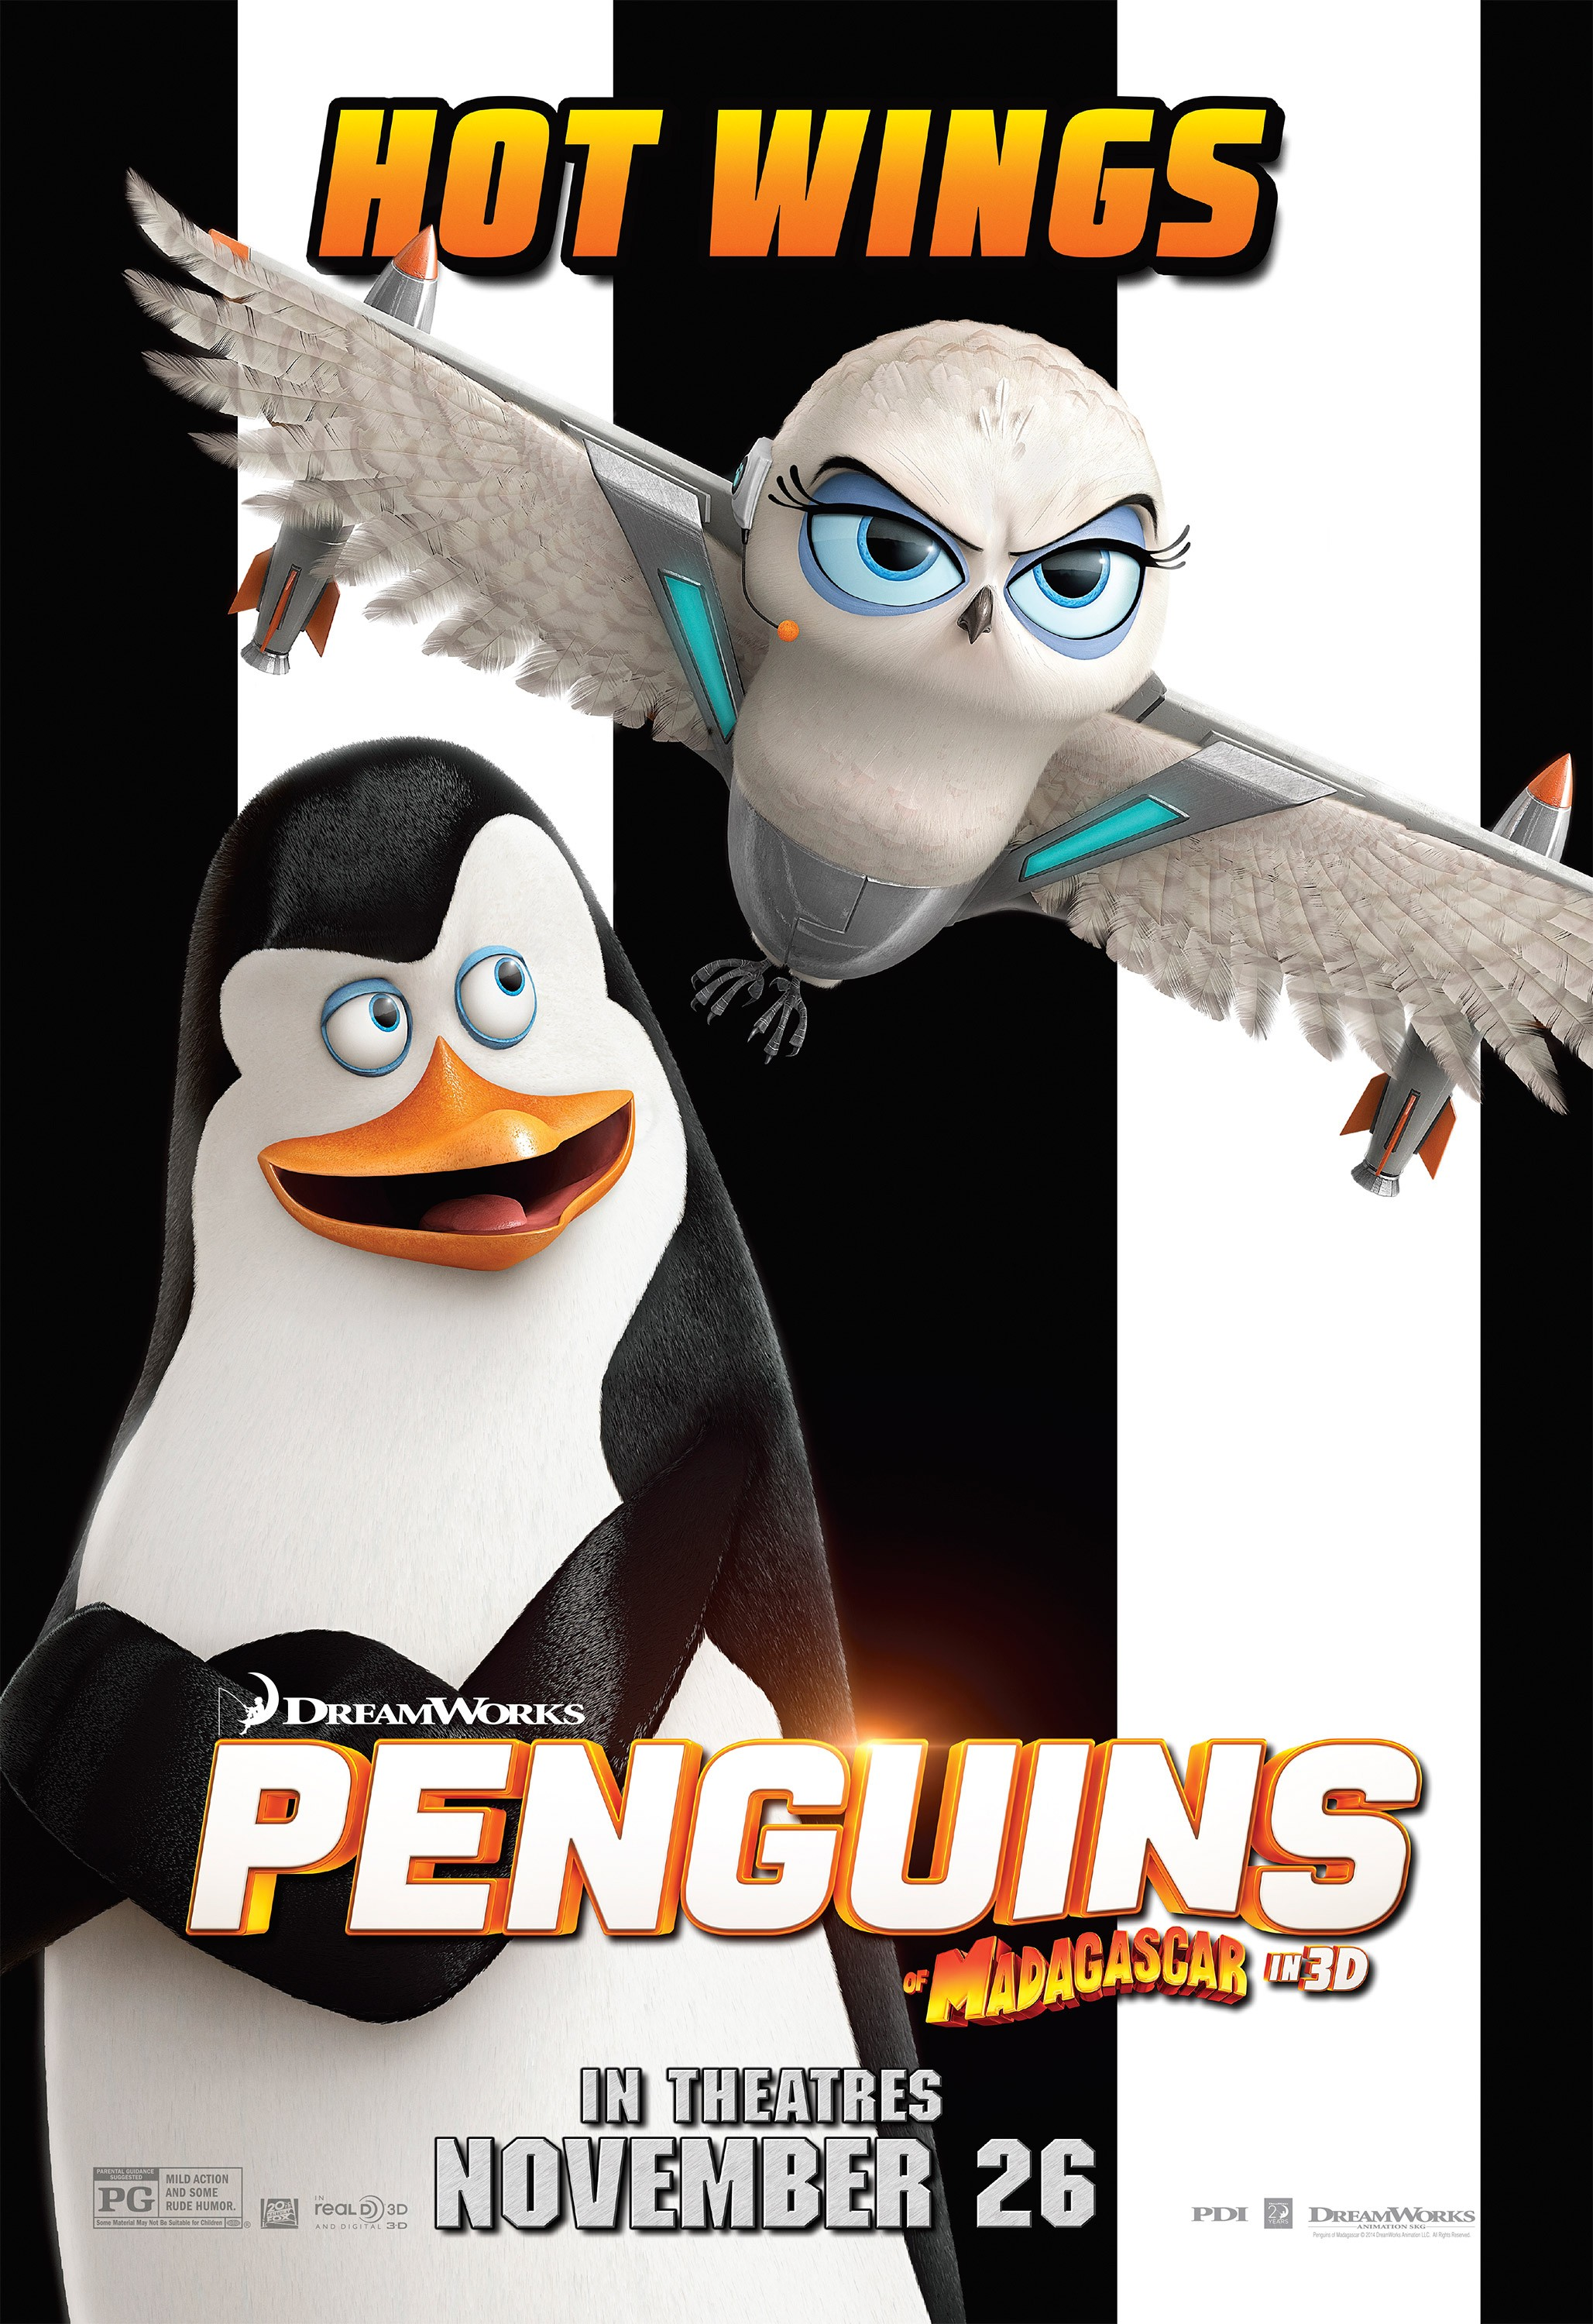 Penguins of Madagascar-PROMO POSTER XXLG-24OUTUBRO2014-02